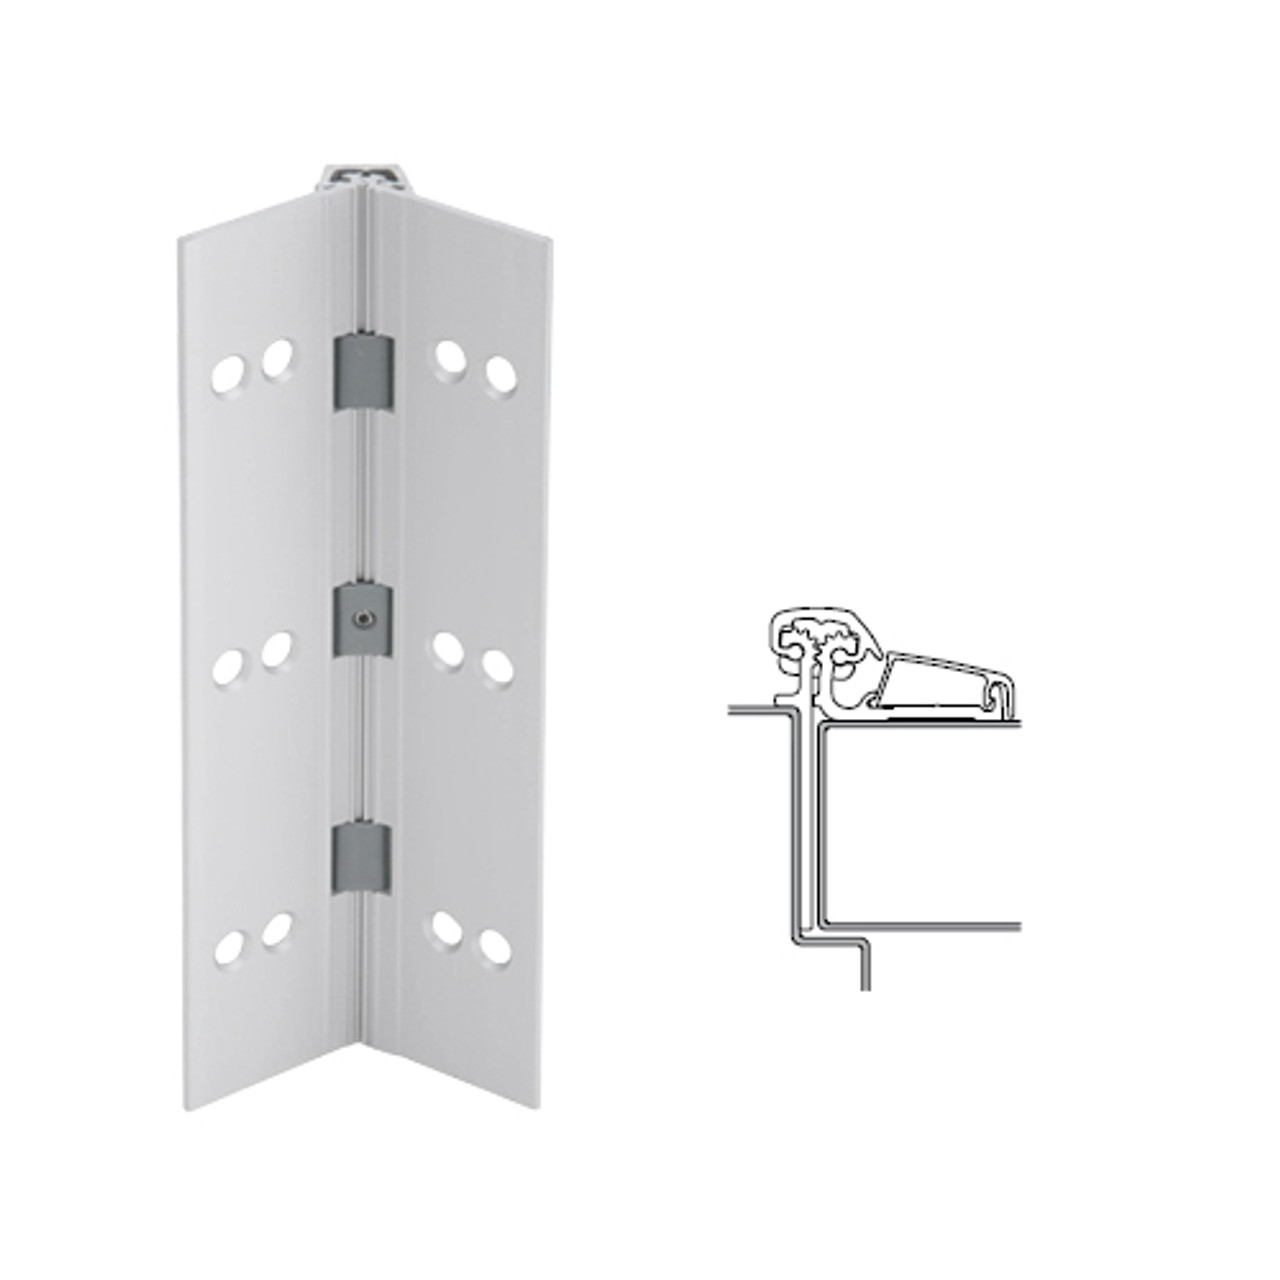 054XY-US28-95-SECHM IVES Adjustable Half Surface Continuous Geared Hinges with Security Screws - Hex Pin Drive in Satin Aluminum